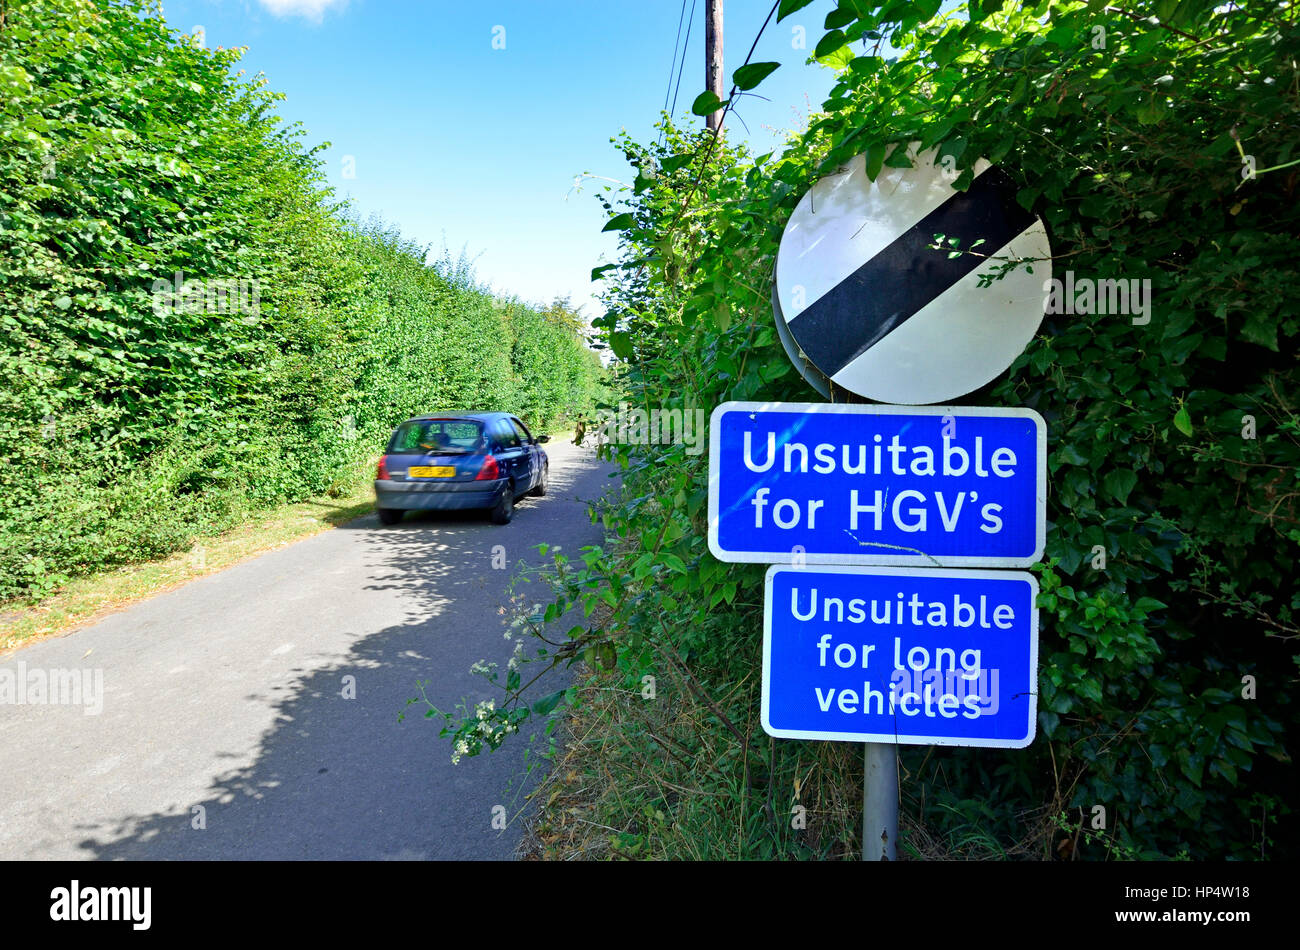 Unsuitable for Heavy Goods Vehicles sign in a small country lane in Kent, England. - Stock Image